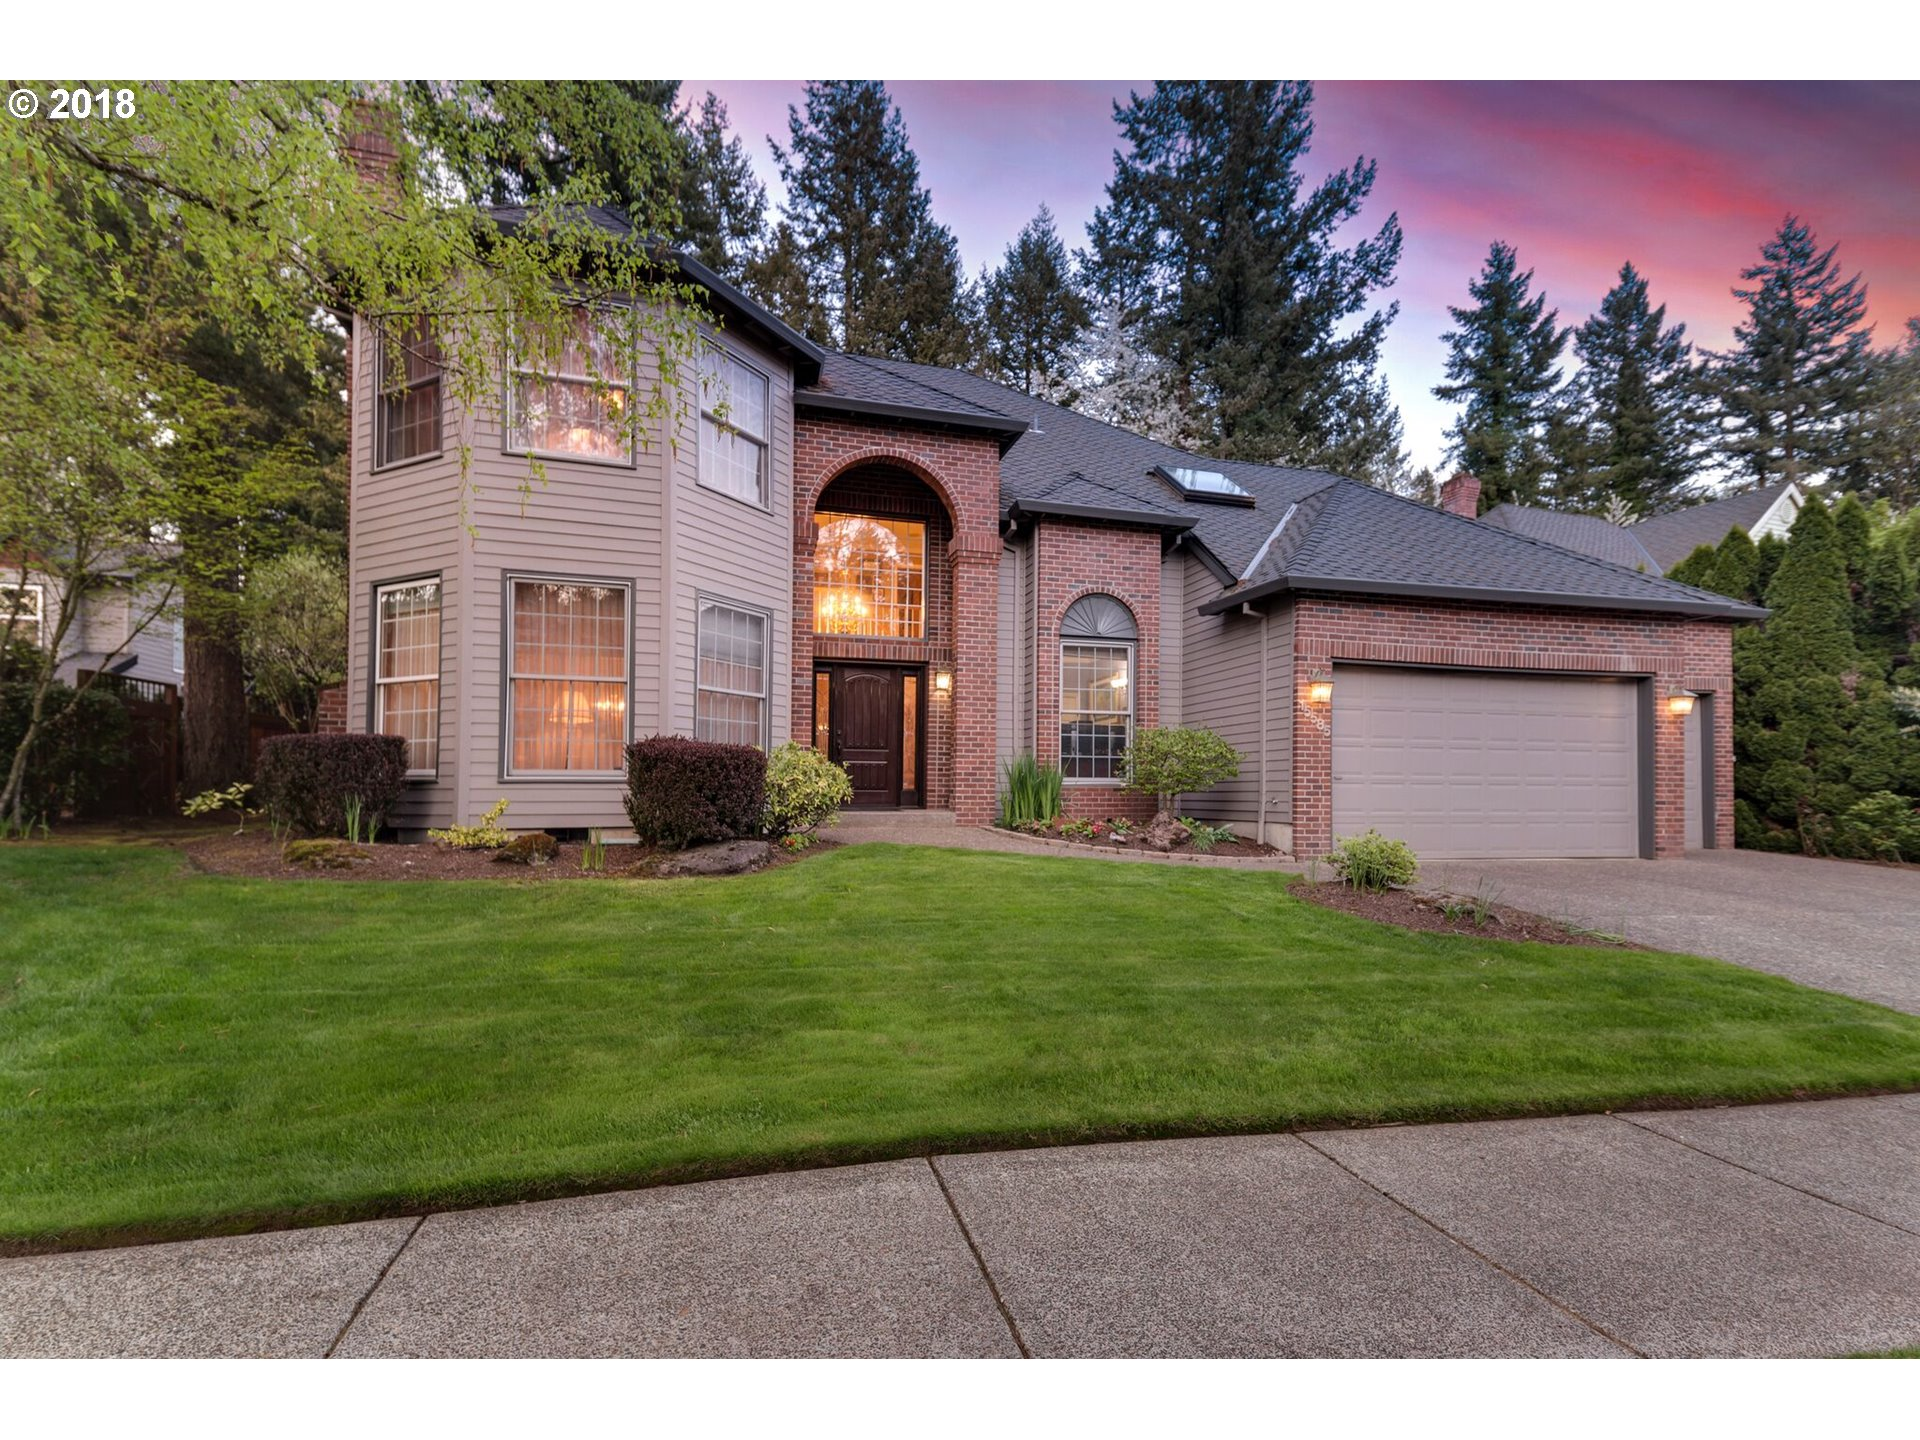 15585 MANCHESTER DR, Lake Oswego, OR 97035